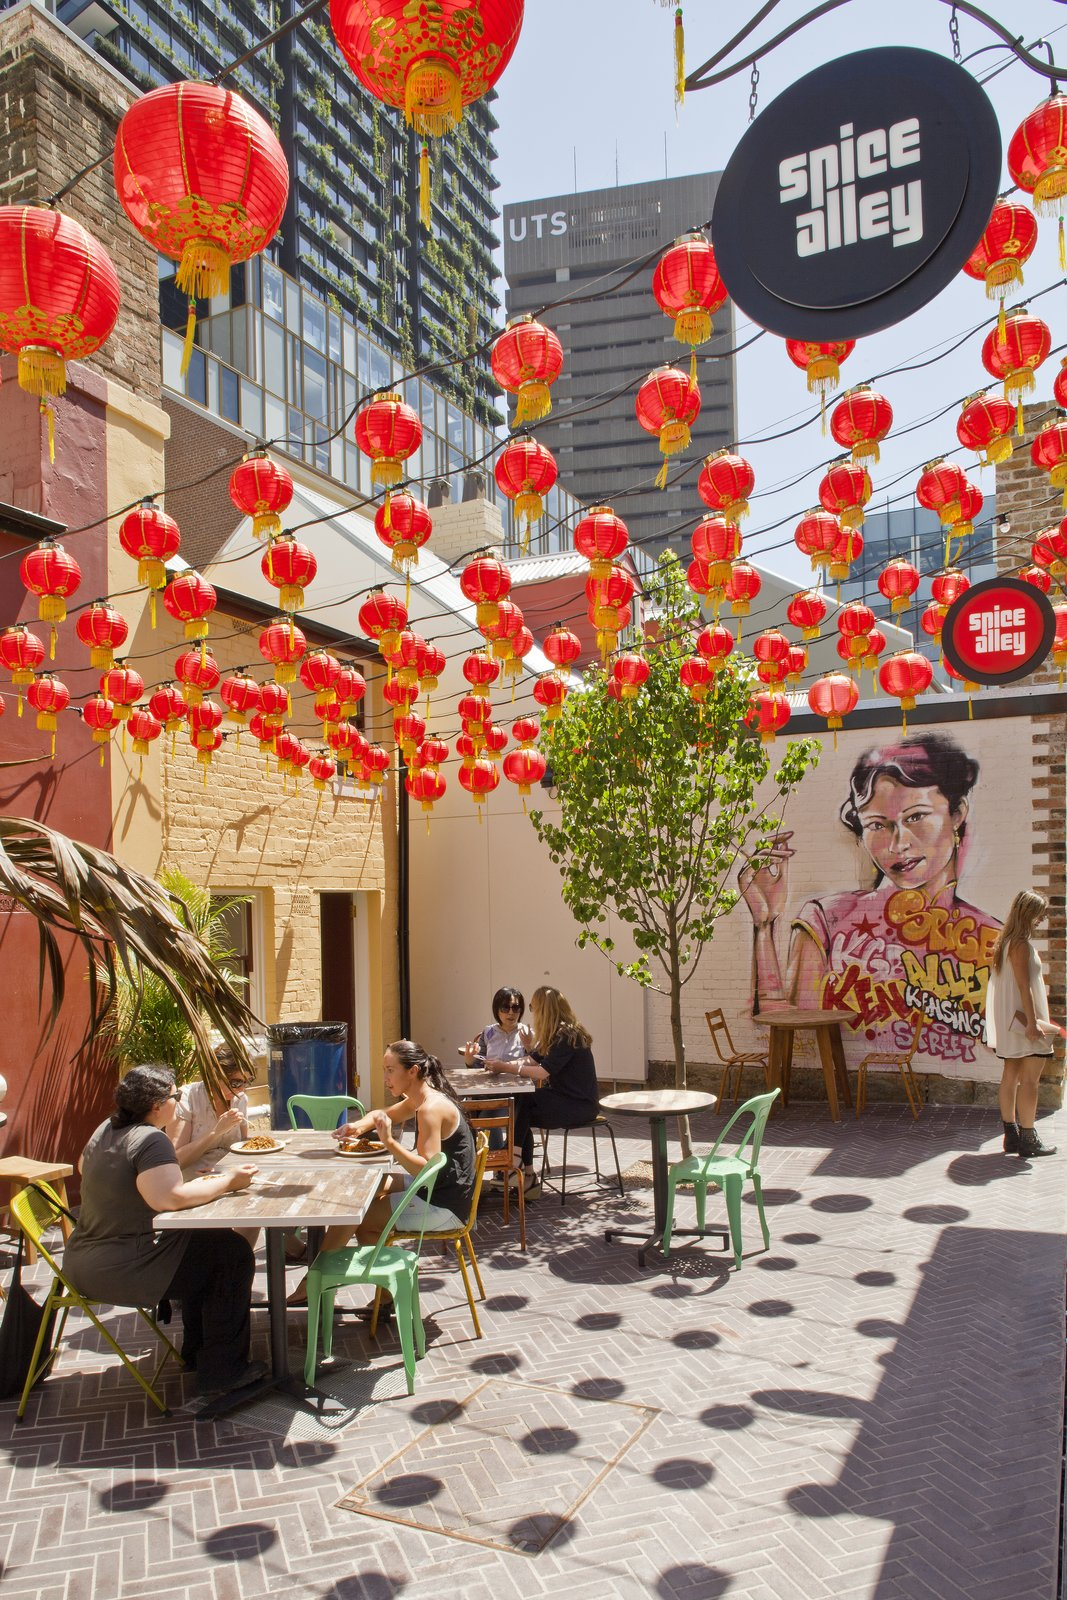 Outdoor eateries enliven the revived laneway.  Photo 7 of 10 in 9 Inspirational Examples of Adaptive Reuse from Urban Rehab: Once Abandoned, a Sydney Street Rises Again